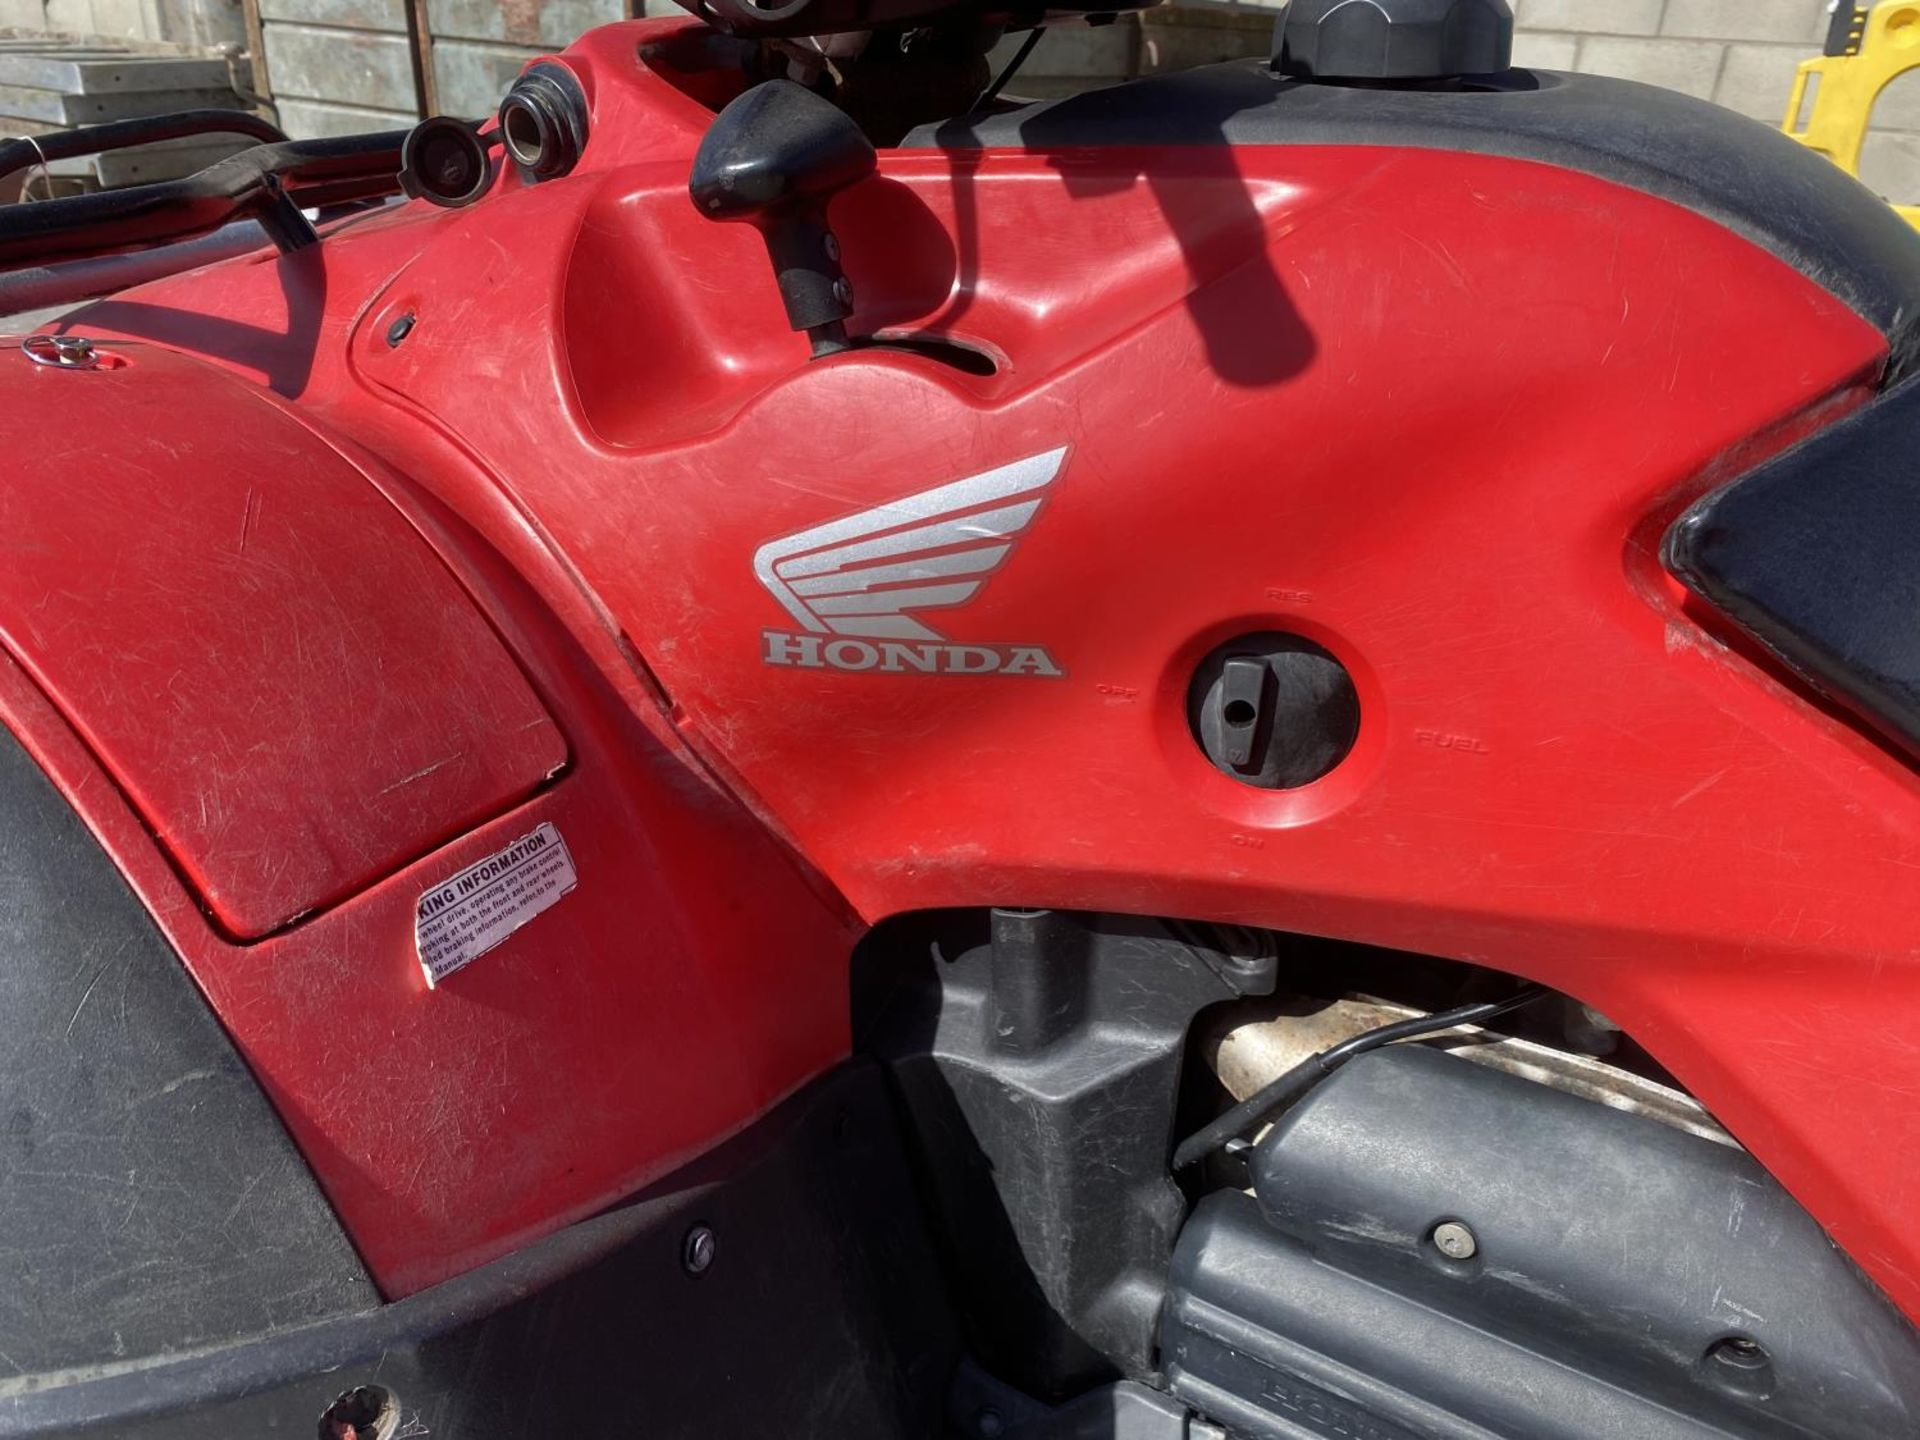 A HONDA TRX FOREMAN 500 CC QUAD BIKE - SEE VIDEO OF VEHICLE STARTING AND RUNNING AT https://www. - Image 2 of 8